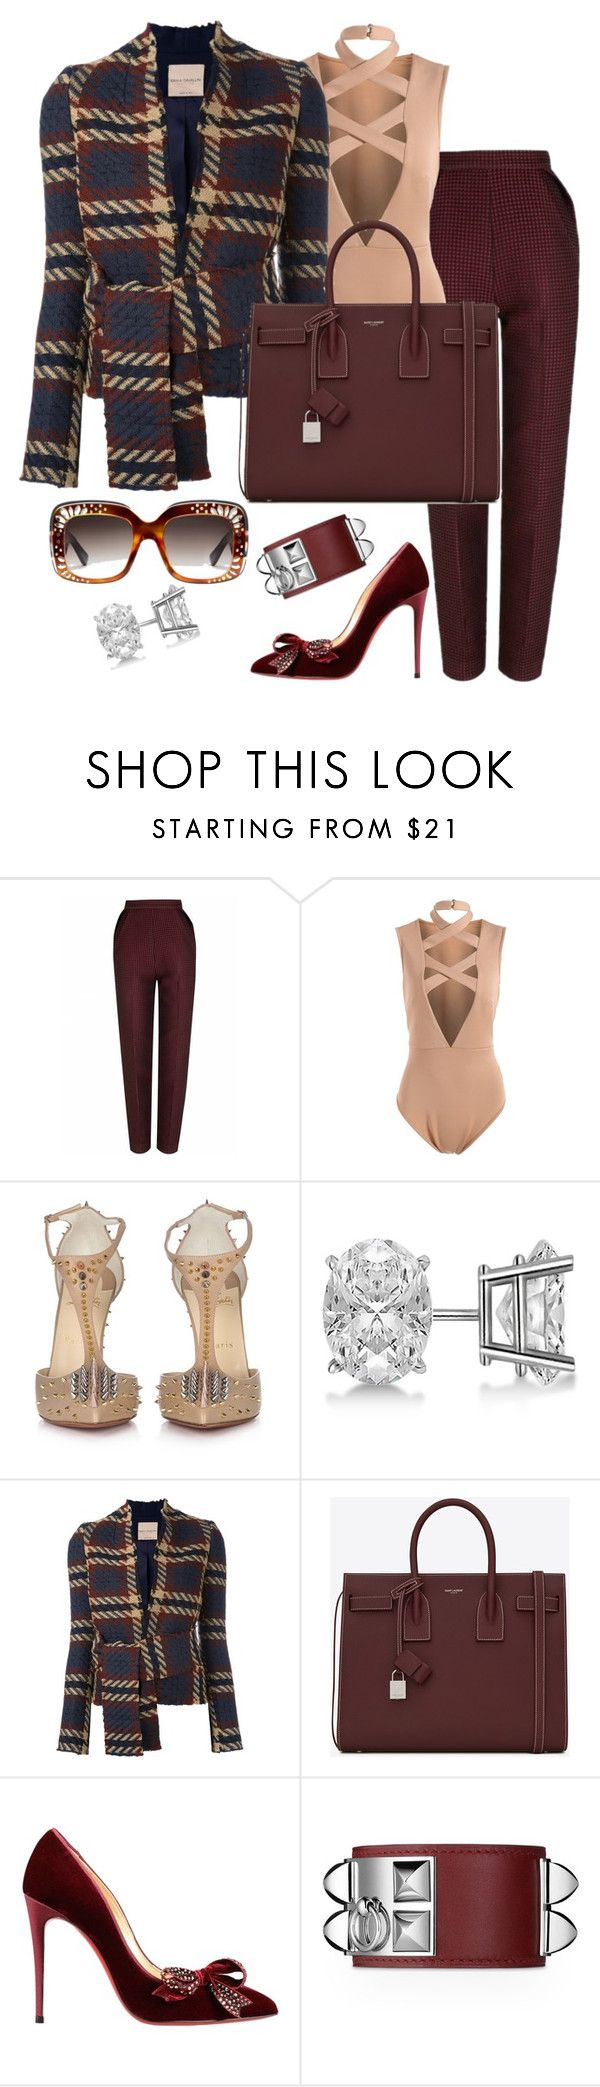 """""""Untitled #1383"""" by fashionkill21 ❤ liked on Polyvore featuring The 2nd Skin Co., Christian Louboutin, Allurez, Erika Cavallini Semi-Couture, Yves Saint Laurent and Gucci"""